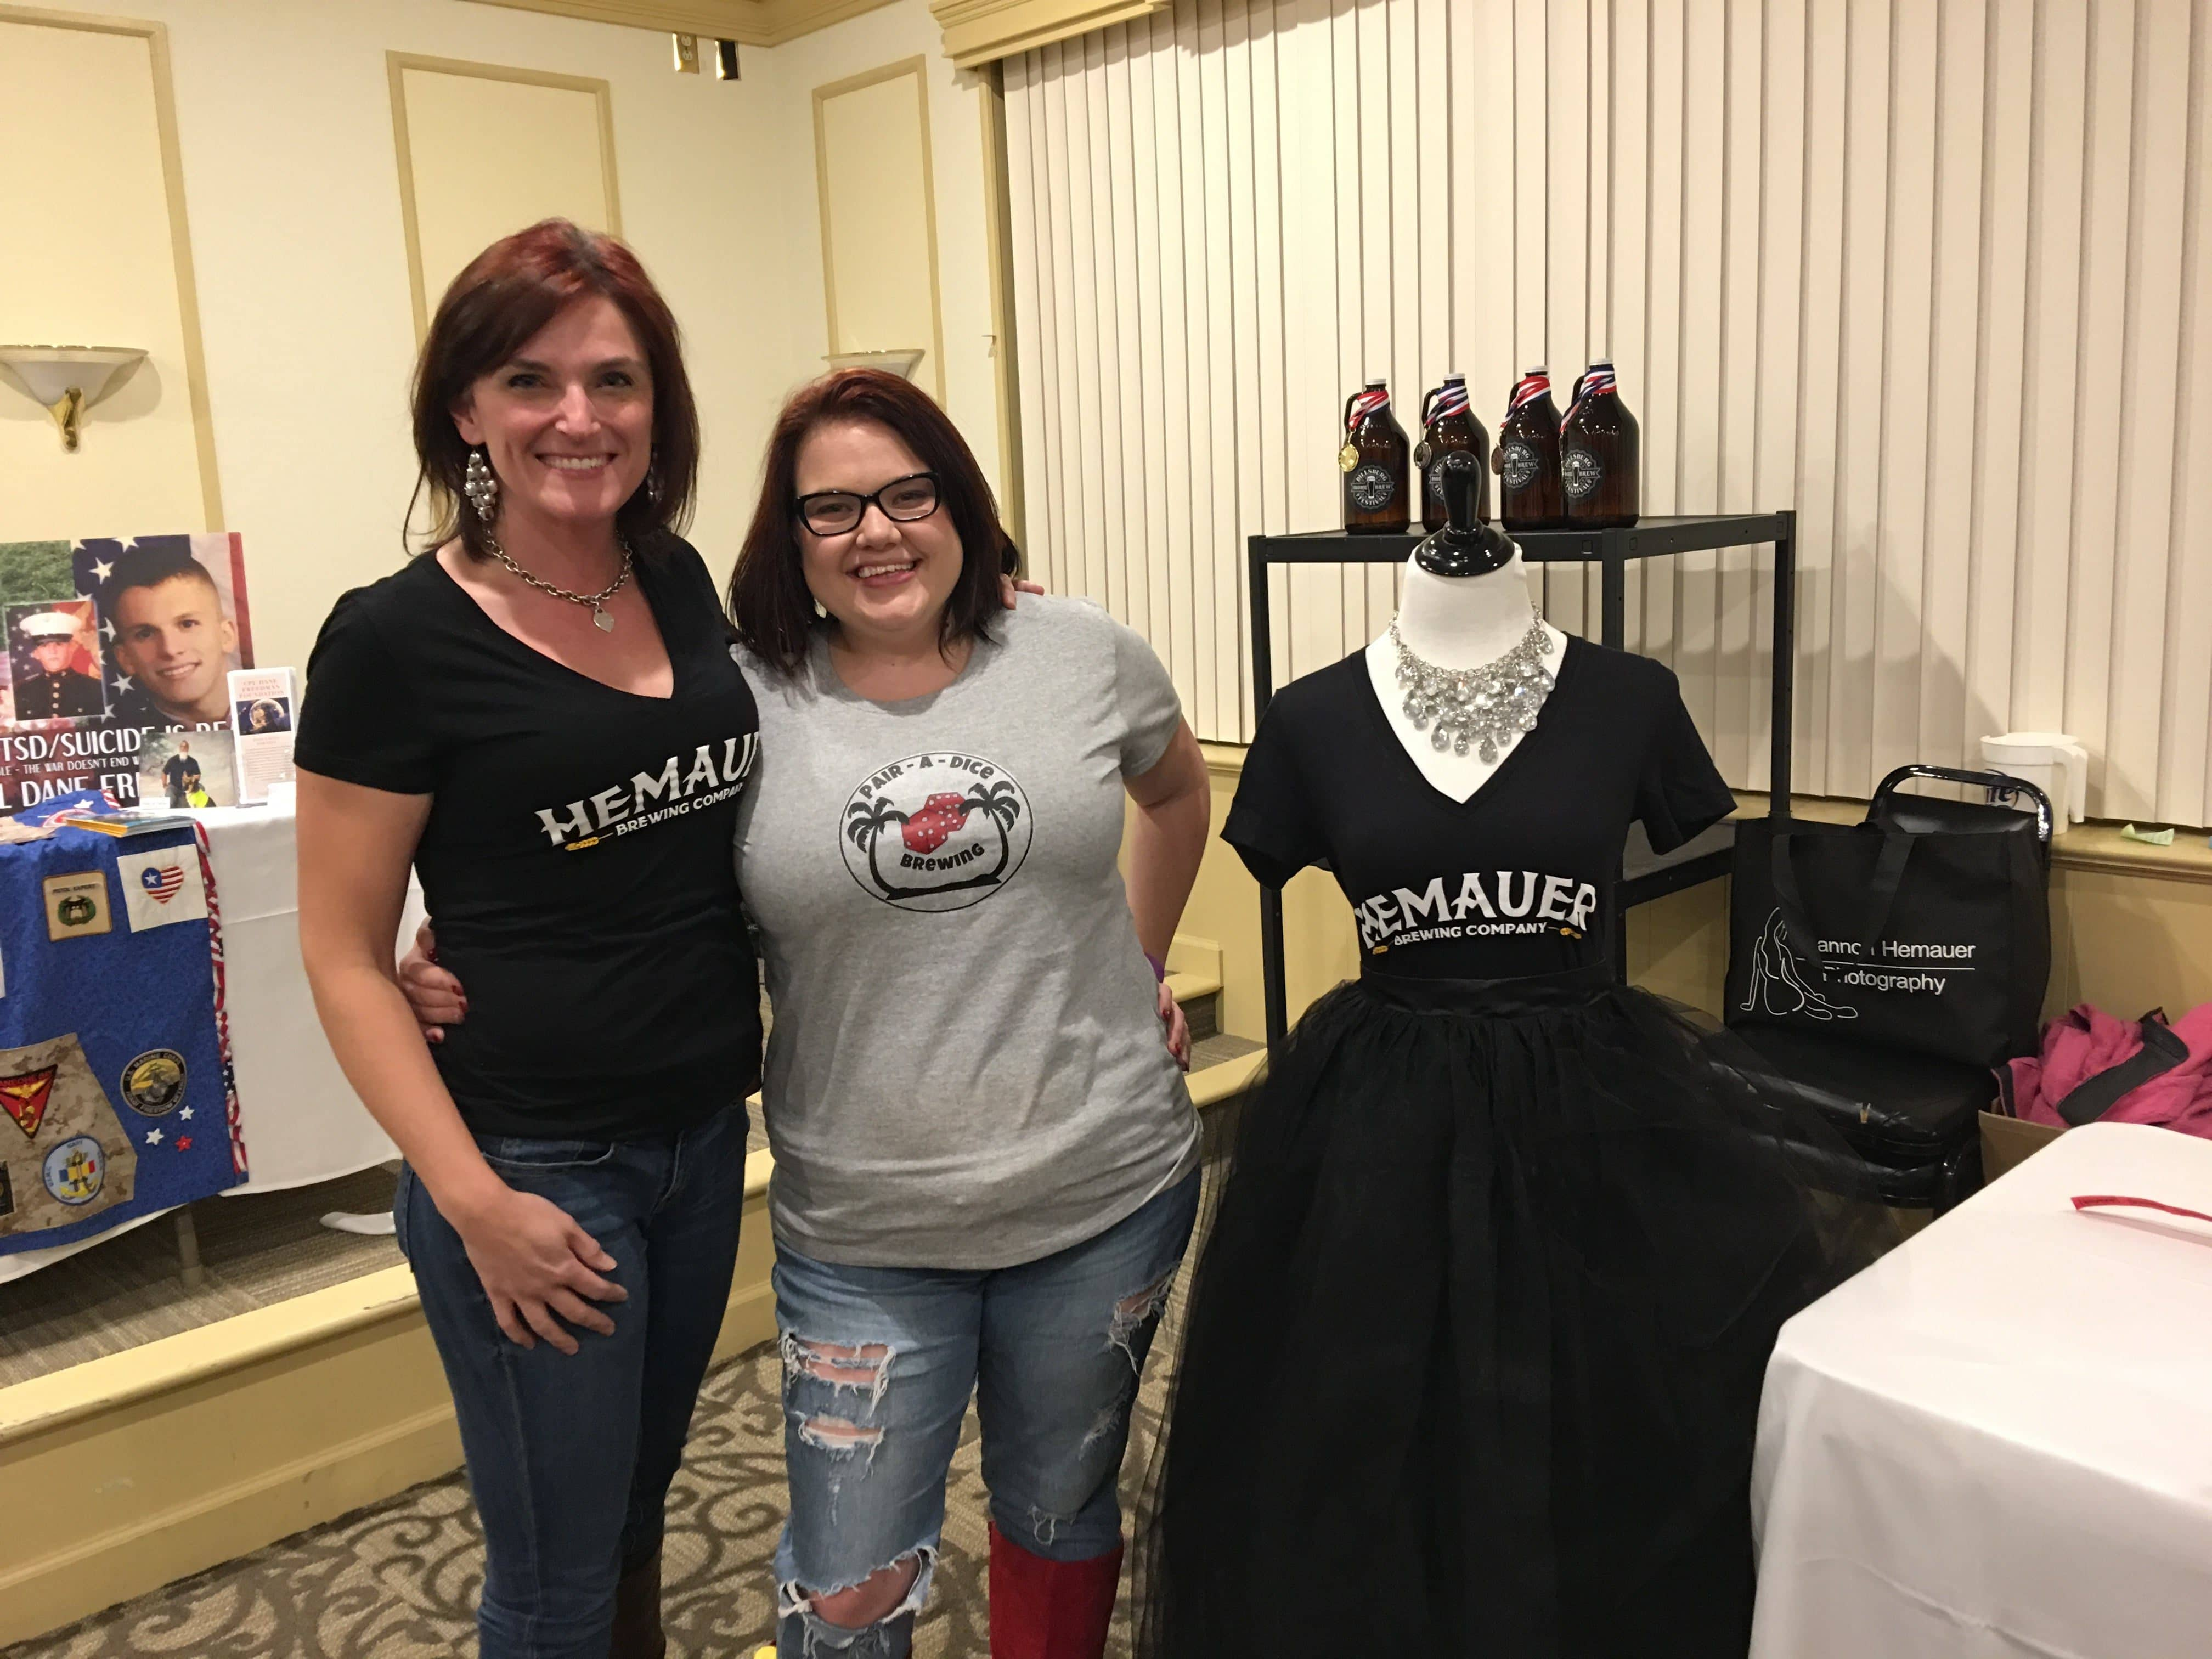 Shannon Hemauer meeting Tessa M for the first time at the Dillsburg Home Brewfest November 2016